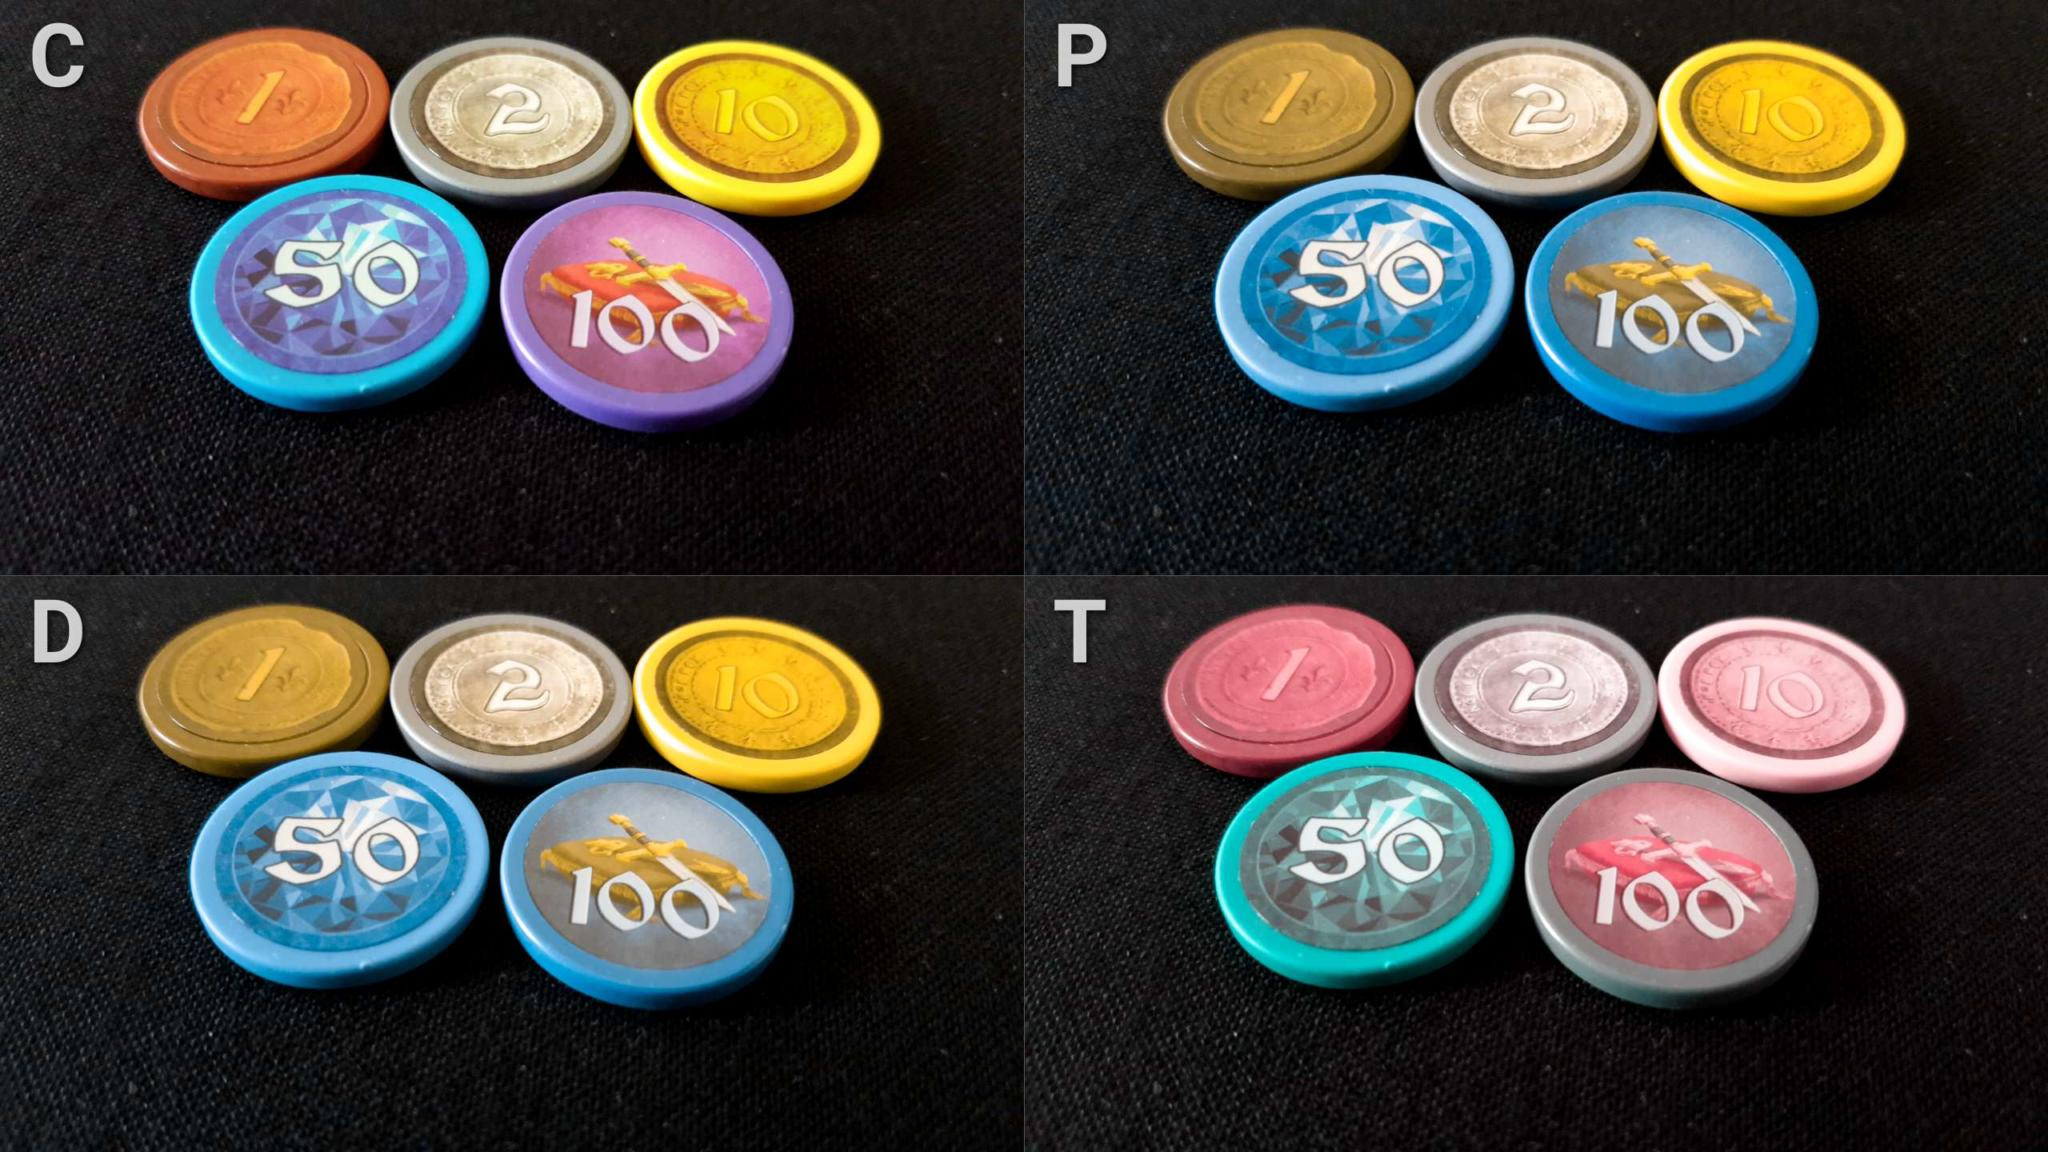 Colour blindness and tokens